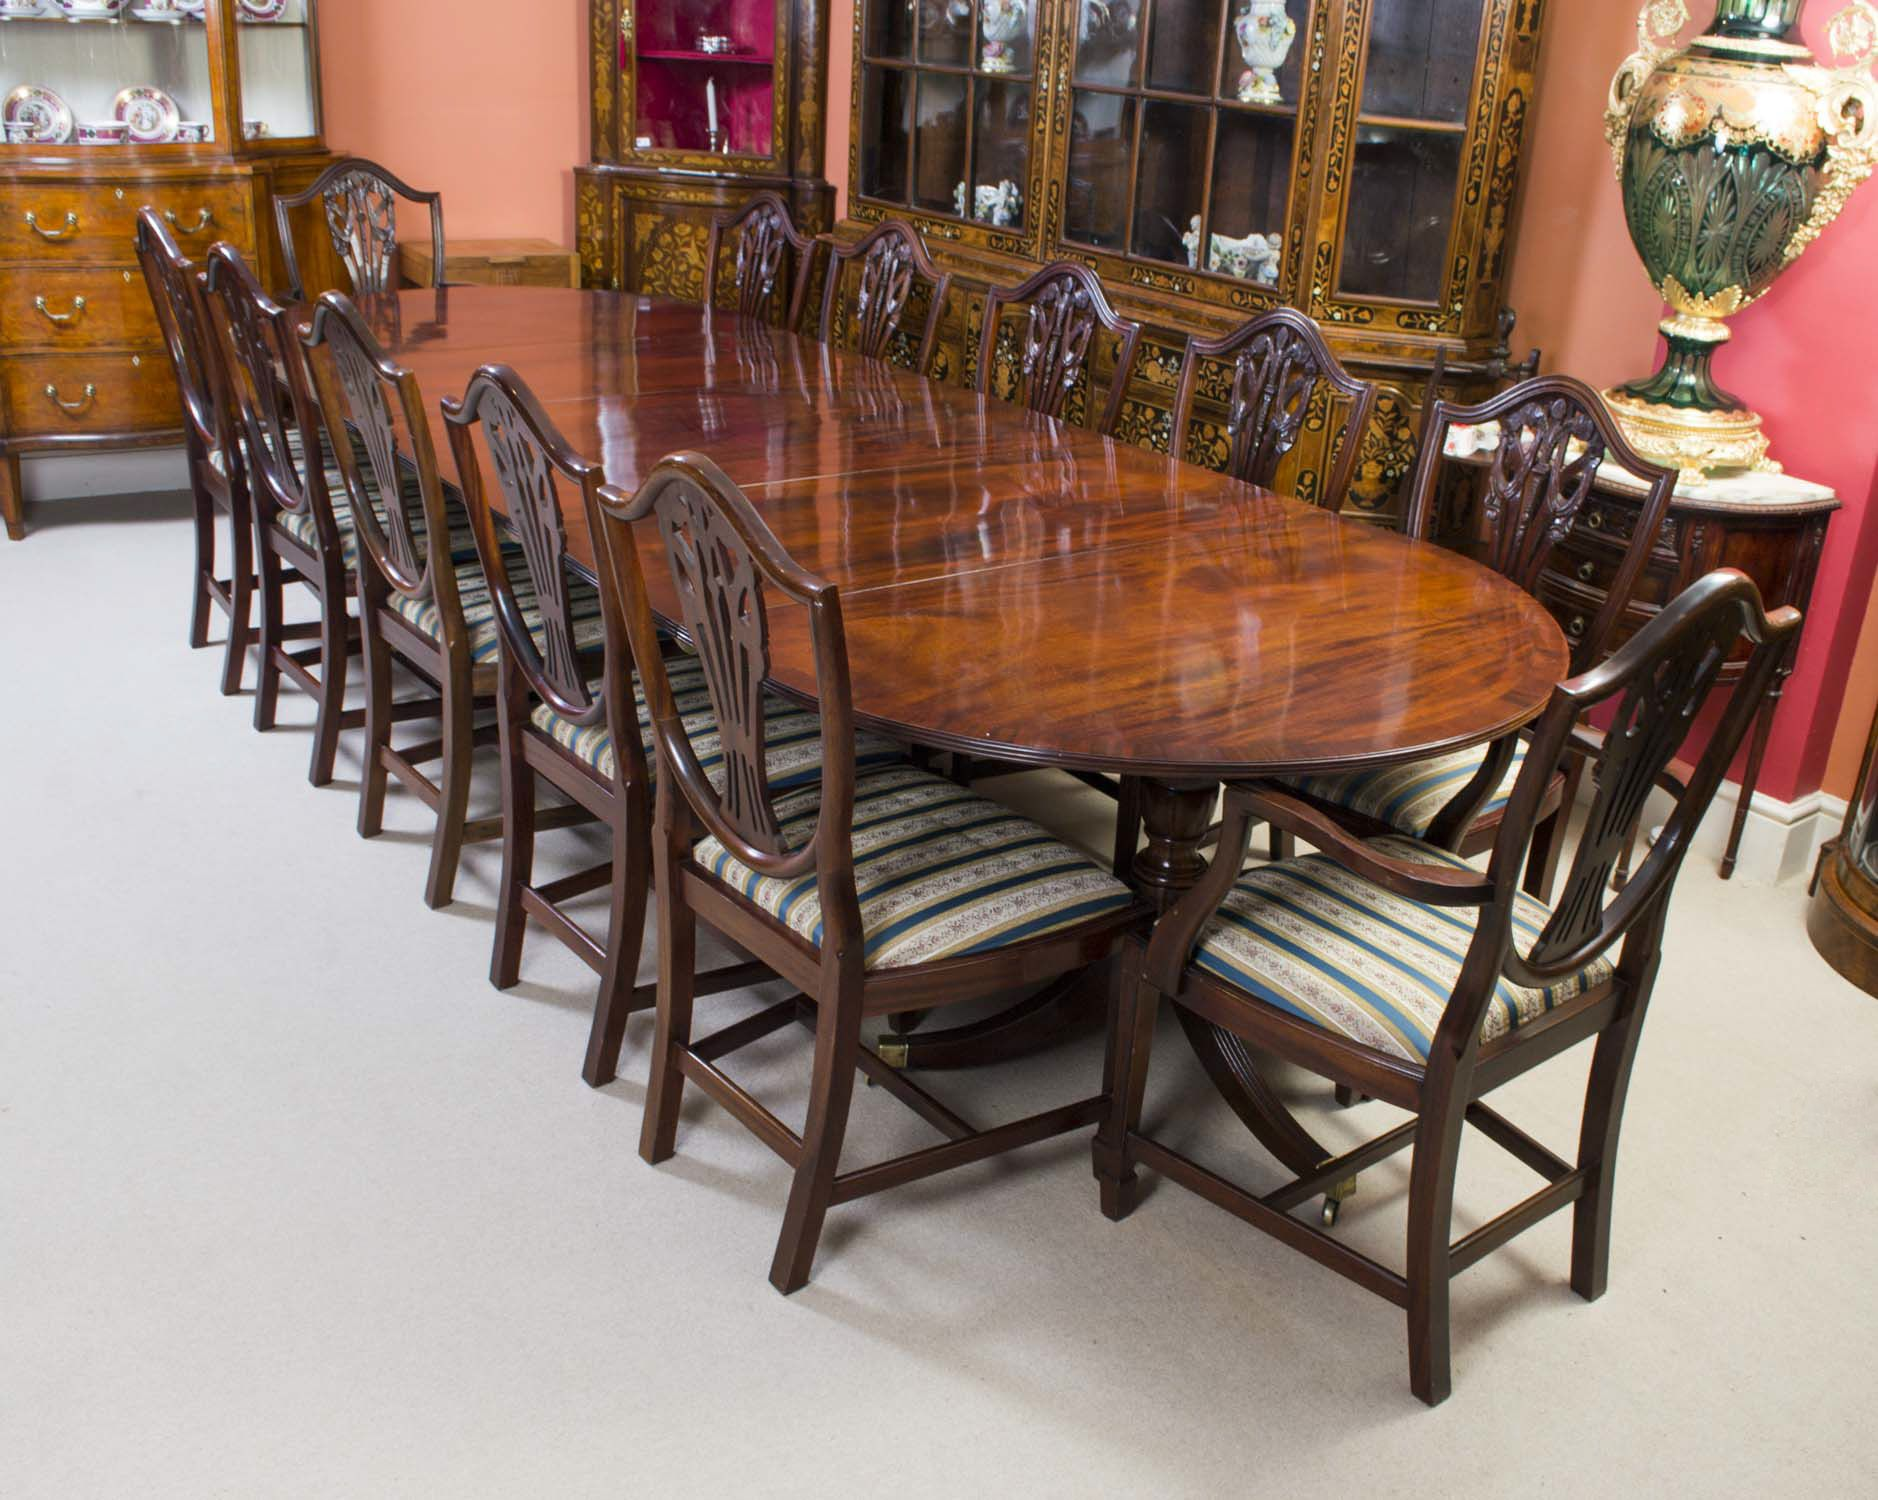 Antique Regency Dining Table & 12 Chairs c.1900 Large